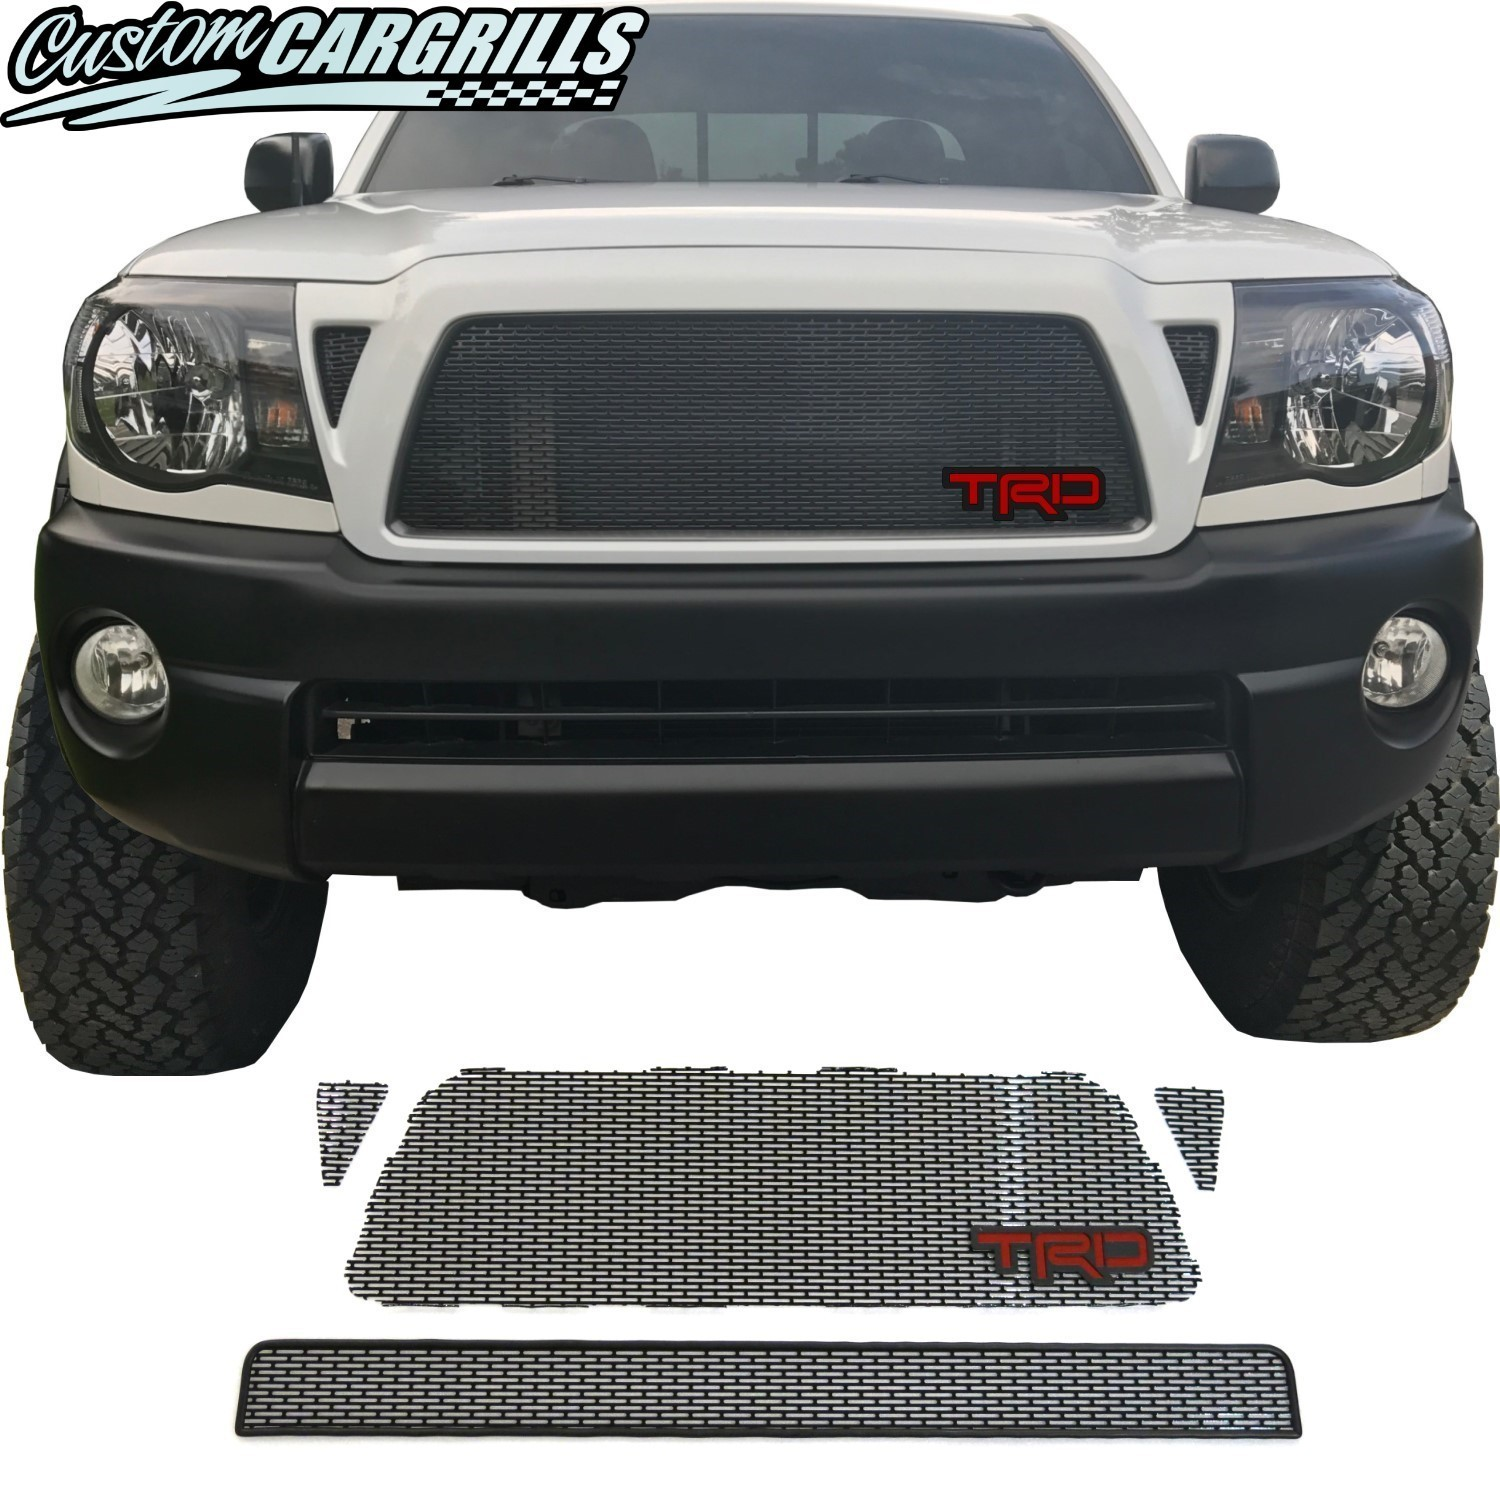 2005 - 2011 Toyota Tacoma Mesh Grill With TRD Emblem